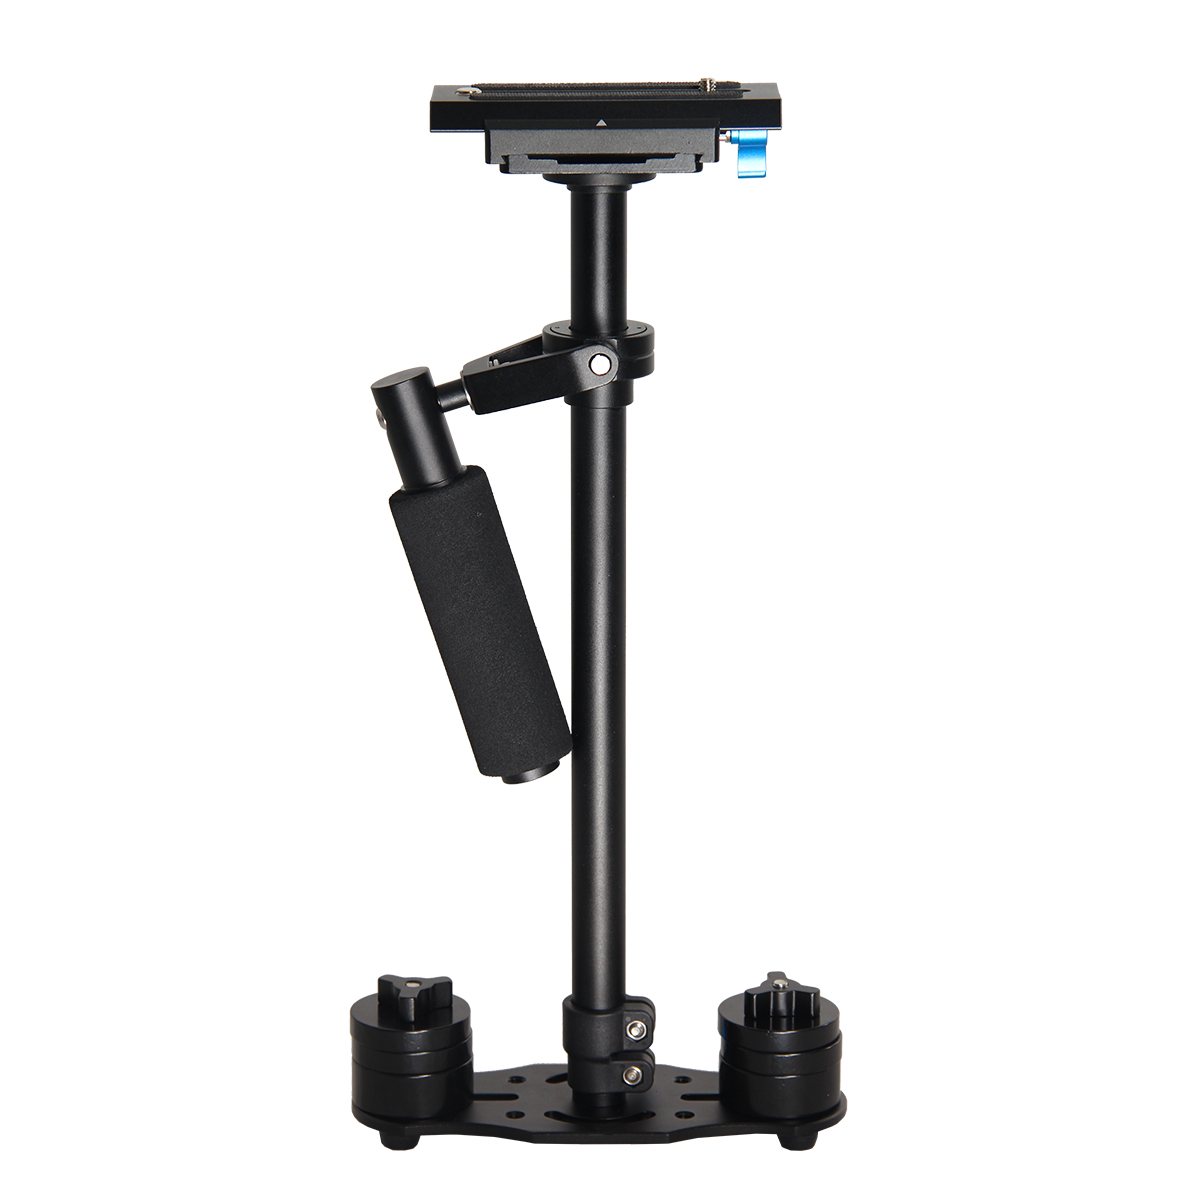 YELANGU Film Stabilizing System Aluminum Alloy Handheld Video Stabilizer For DSLR Camcorders